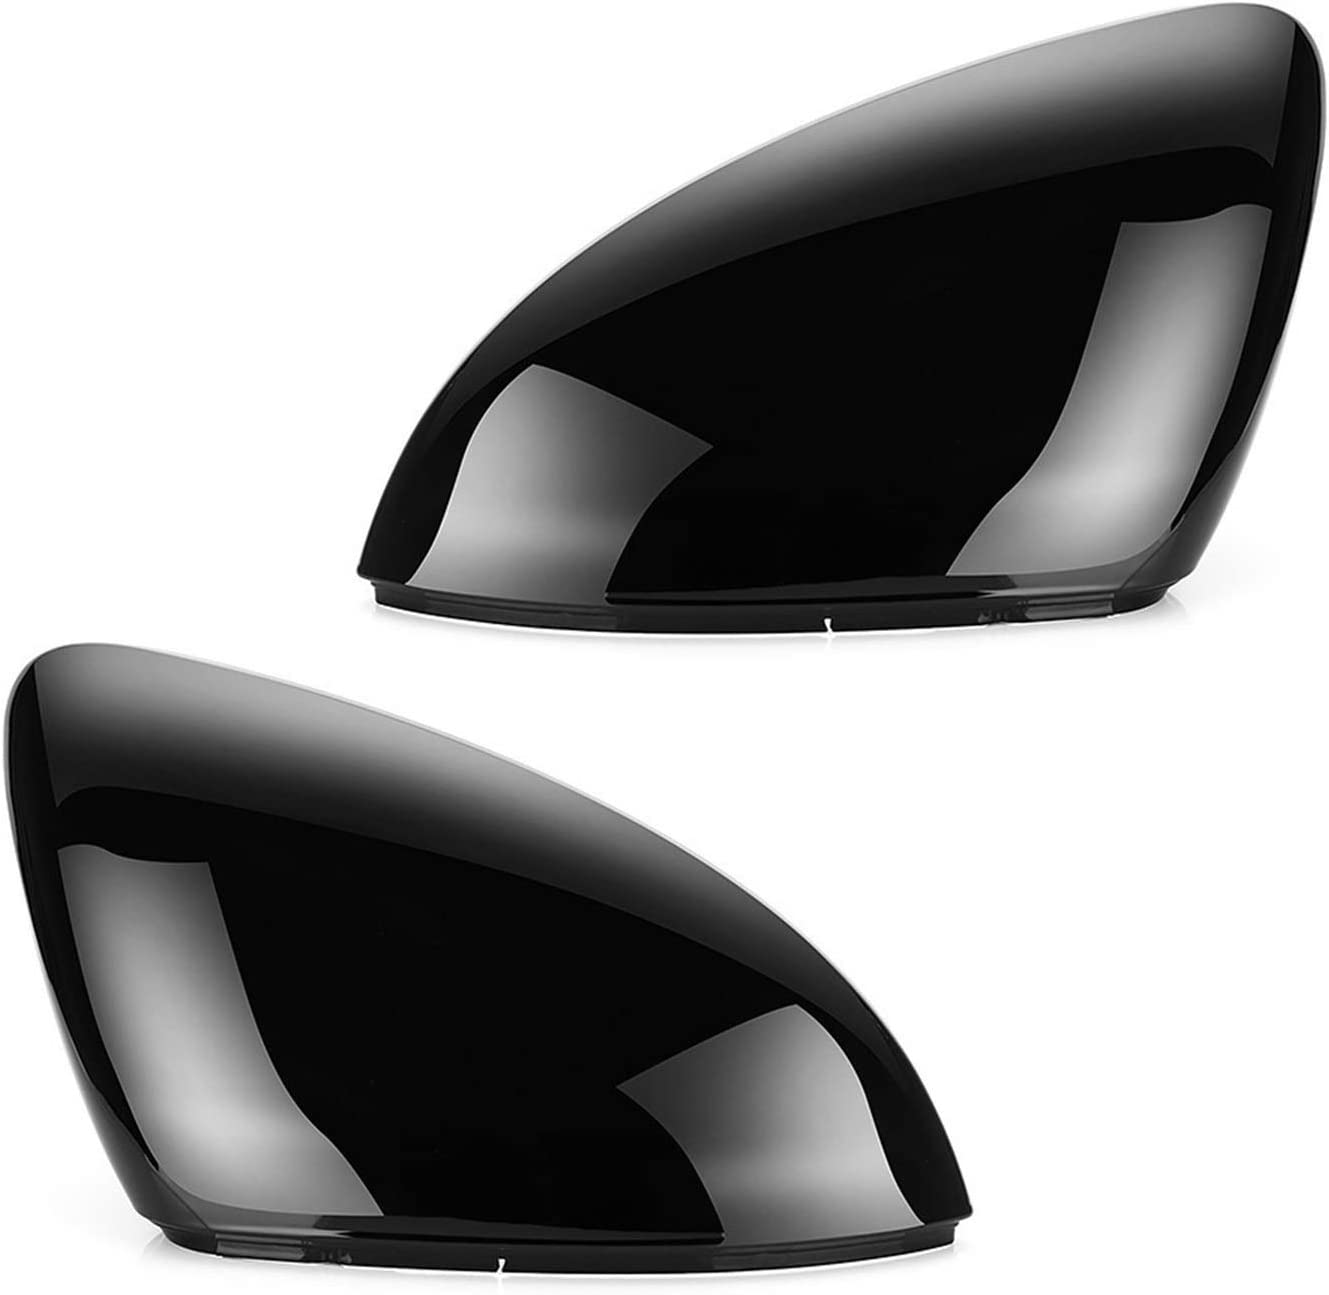 DaJiKan 2 Pieces for VW Golf MK7 Max 83% OFF 7 Caps GTI 7.5 7R All items free shipping Covers Mirror